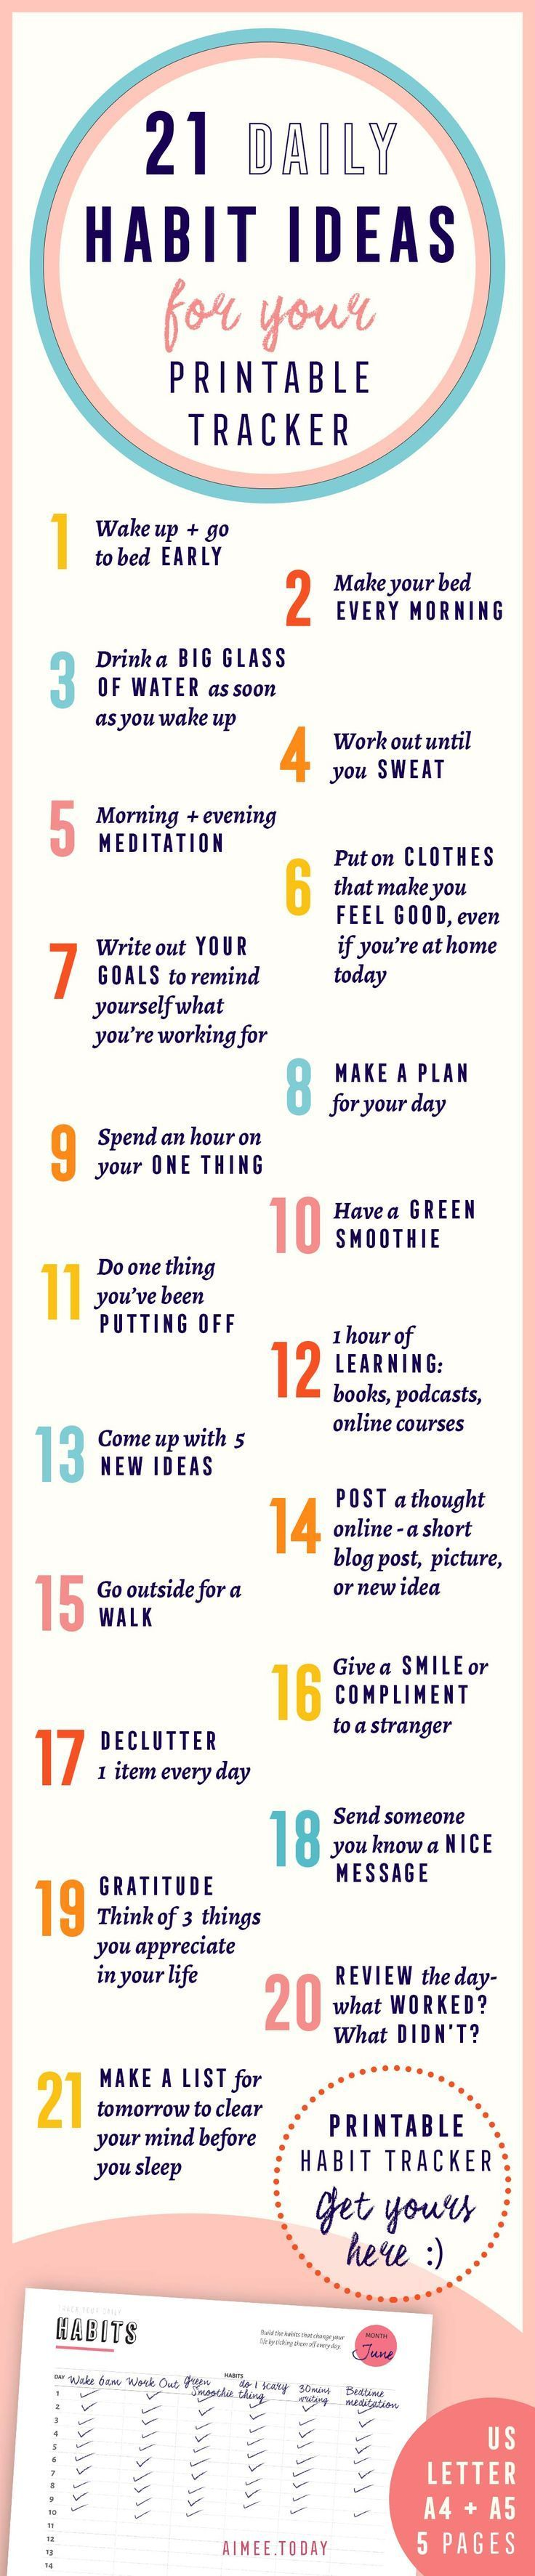 21 ideas for good habits that you can build and track with your printable habit tracker. They'll make you happier, healthier, more organised and bring you closer to your goals. Have more fun bringing your dreams to life!